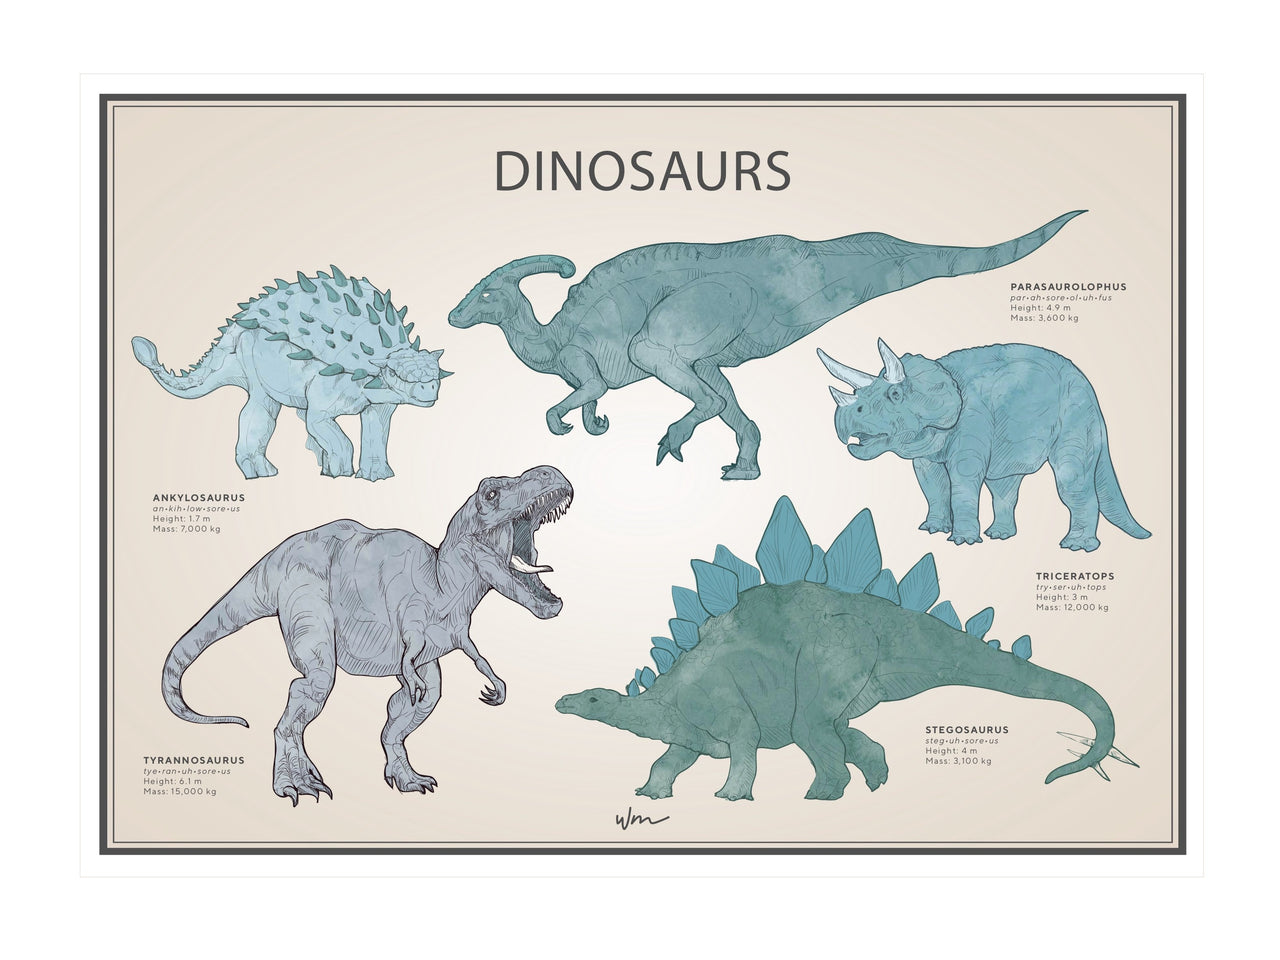 Dinosaur watercolour poster decal - Vintage look